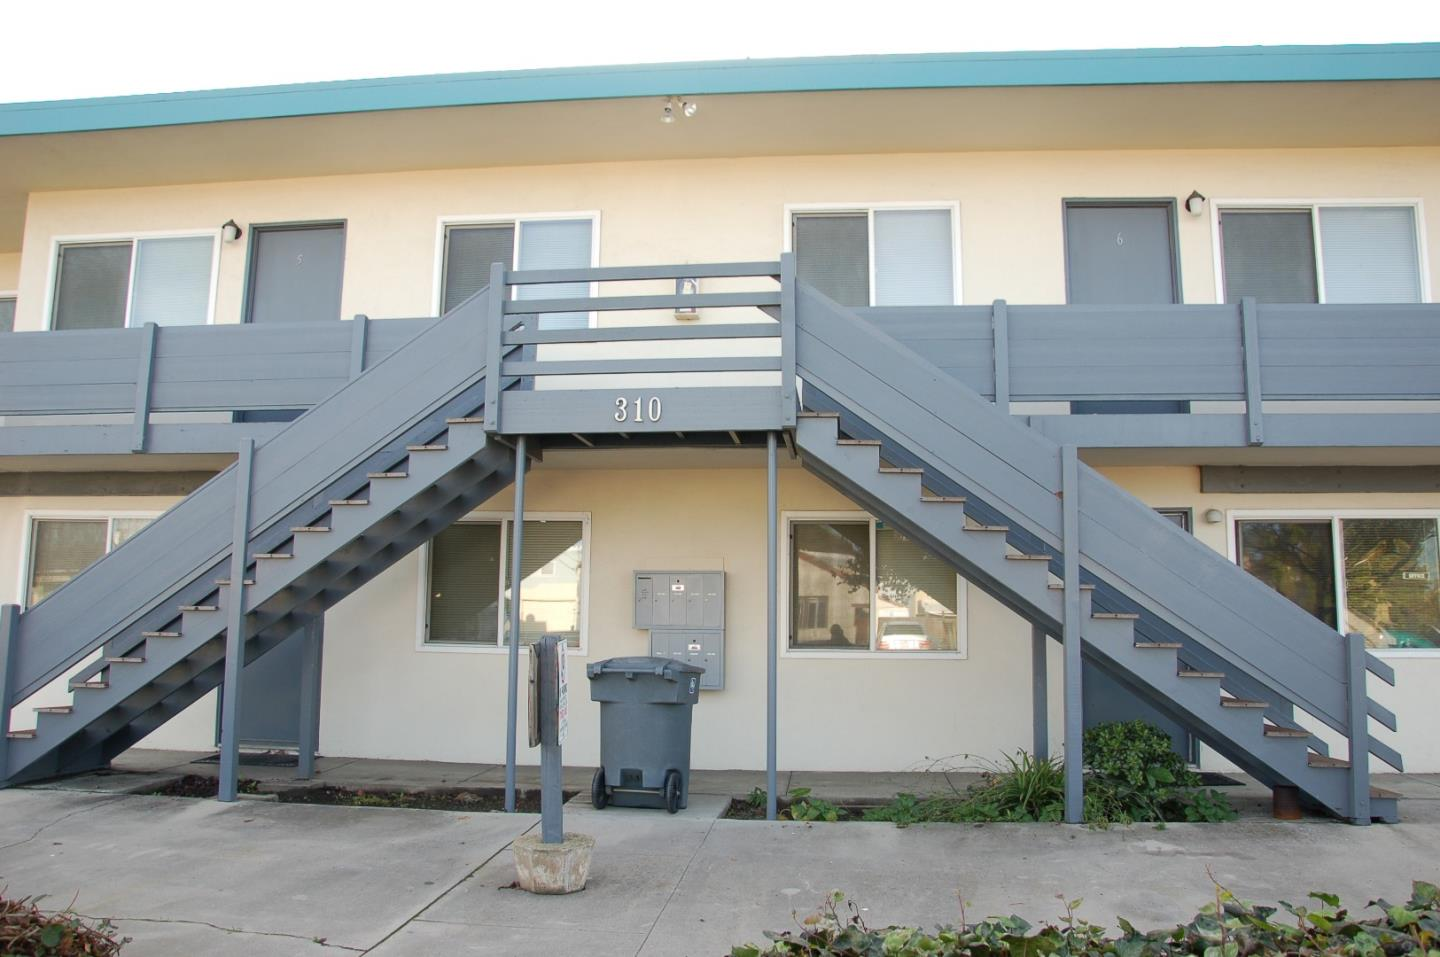 310 Maple Street Salinas, CA 93901 - MLS #: ML81732549